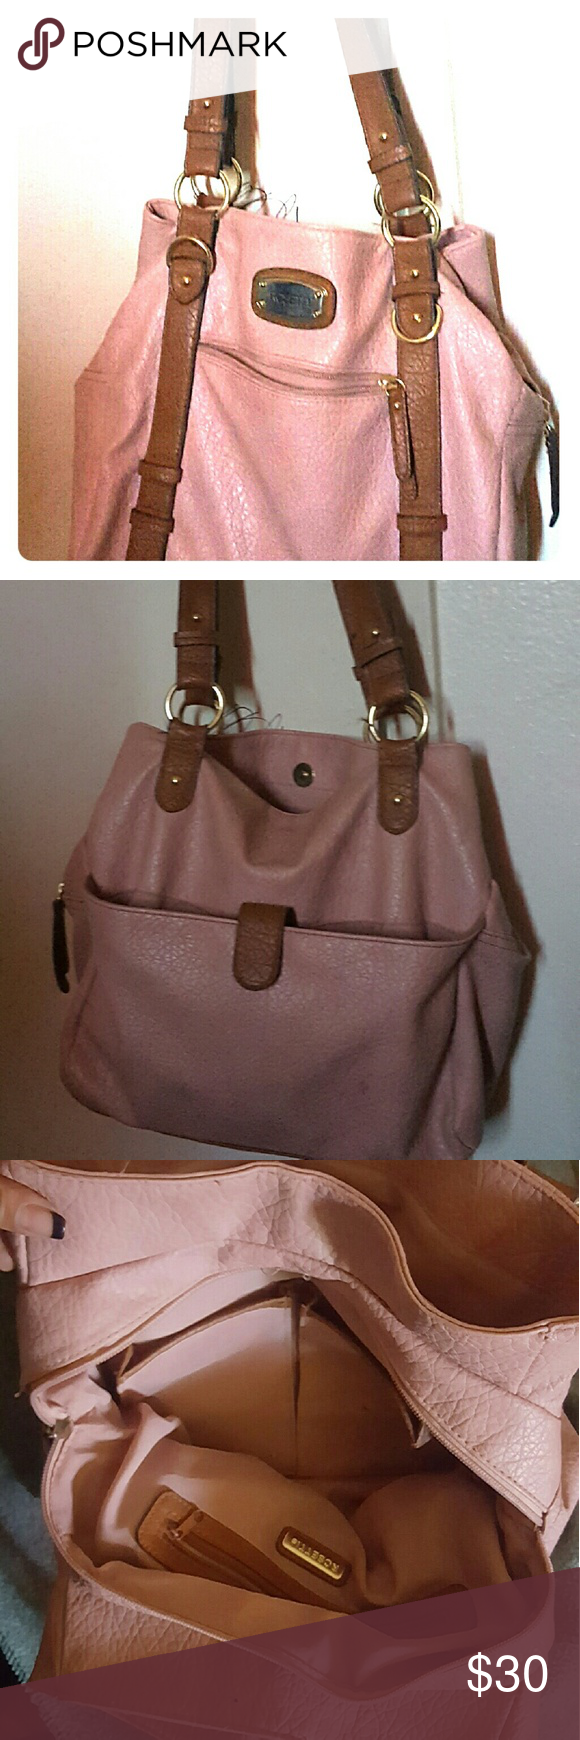 Pink and brown purse This pink and brown purse is very spacious. Its perfect  for running errands as well as having it in the office. You can dress it up or dress it down. Bags Shoulder Bags